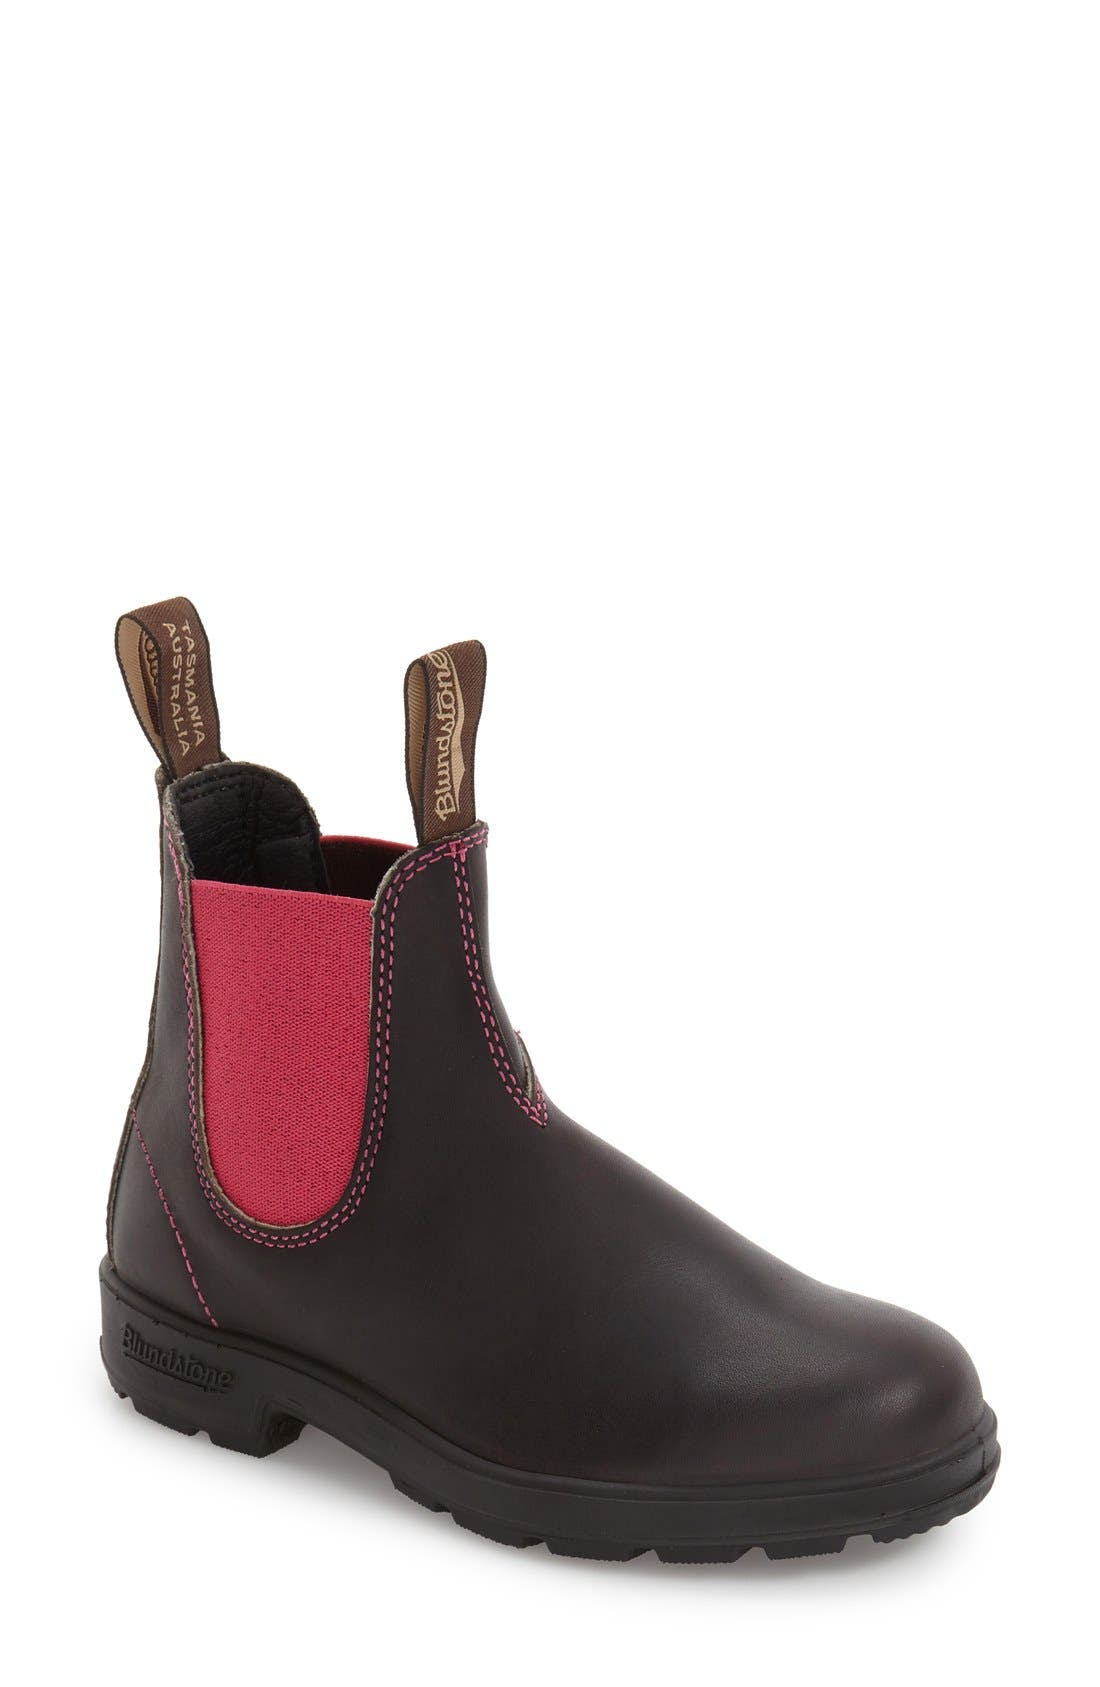 Blundstone Women's Footwear 'Original - 500 Series' Water Resistant Chelsea Boot